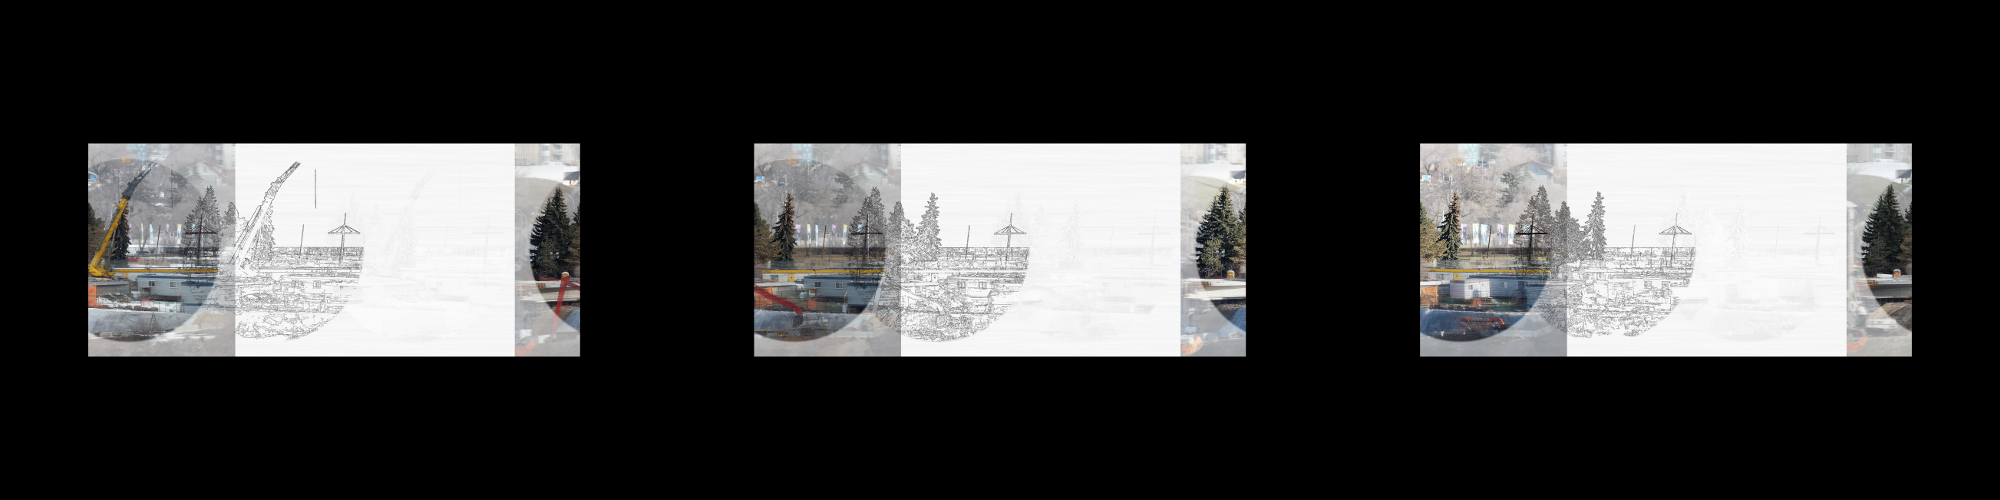 Untitled - Trees & Burial Grounds Time-breeze Reverb Thaw DA